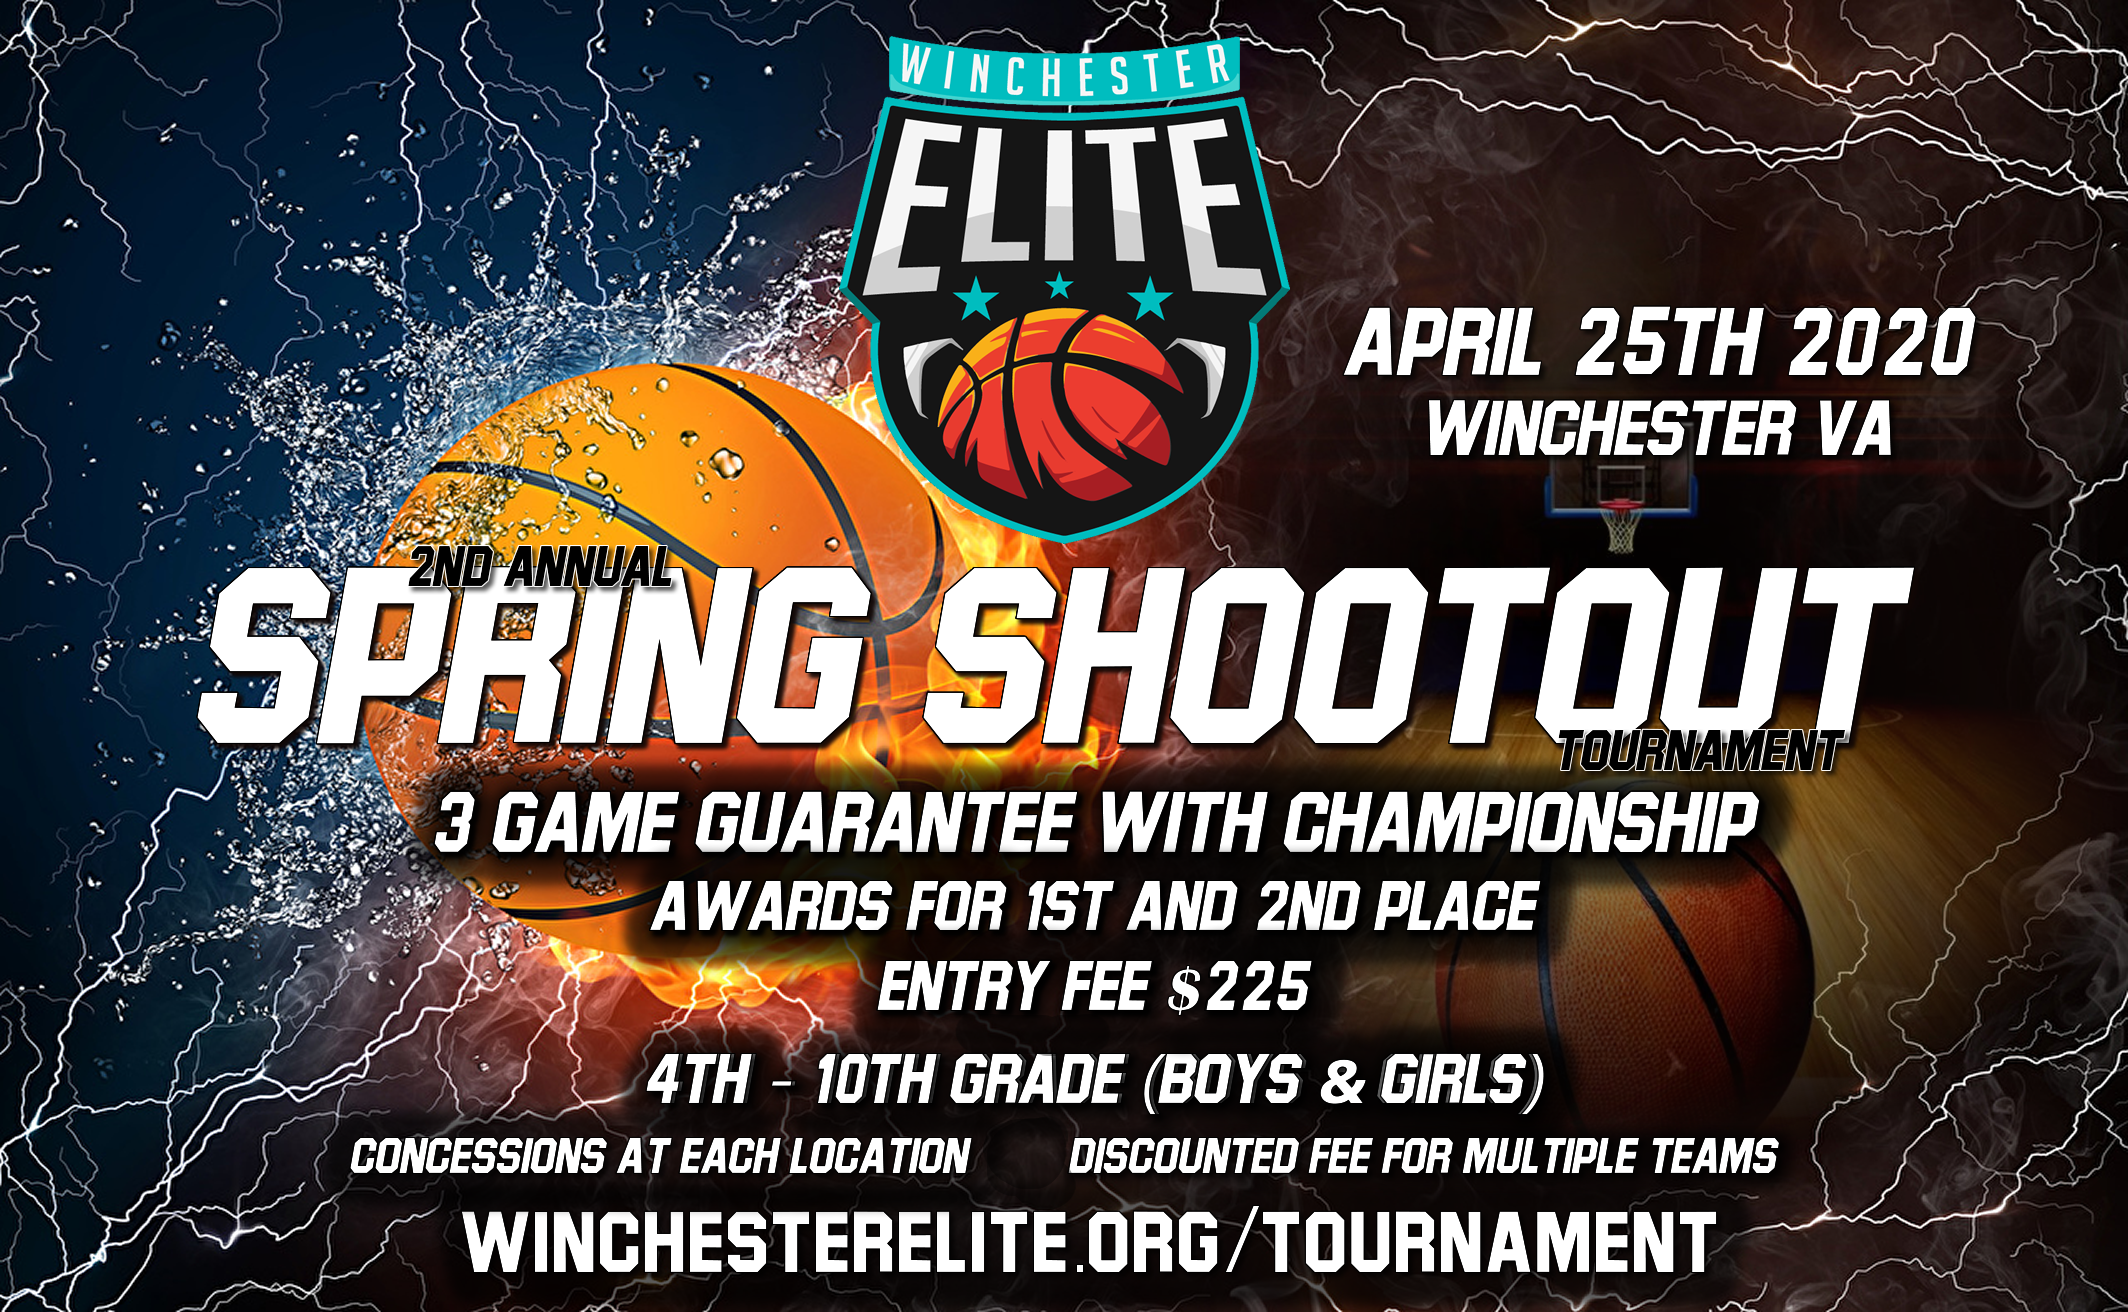 http://winchesterelite.org/wp-content/uploads/2020/01/Tournament-Flyer-Spring-2020.fw_.png